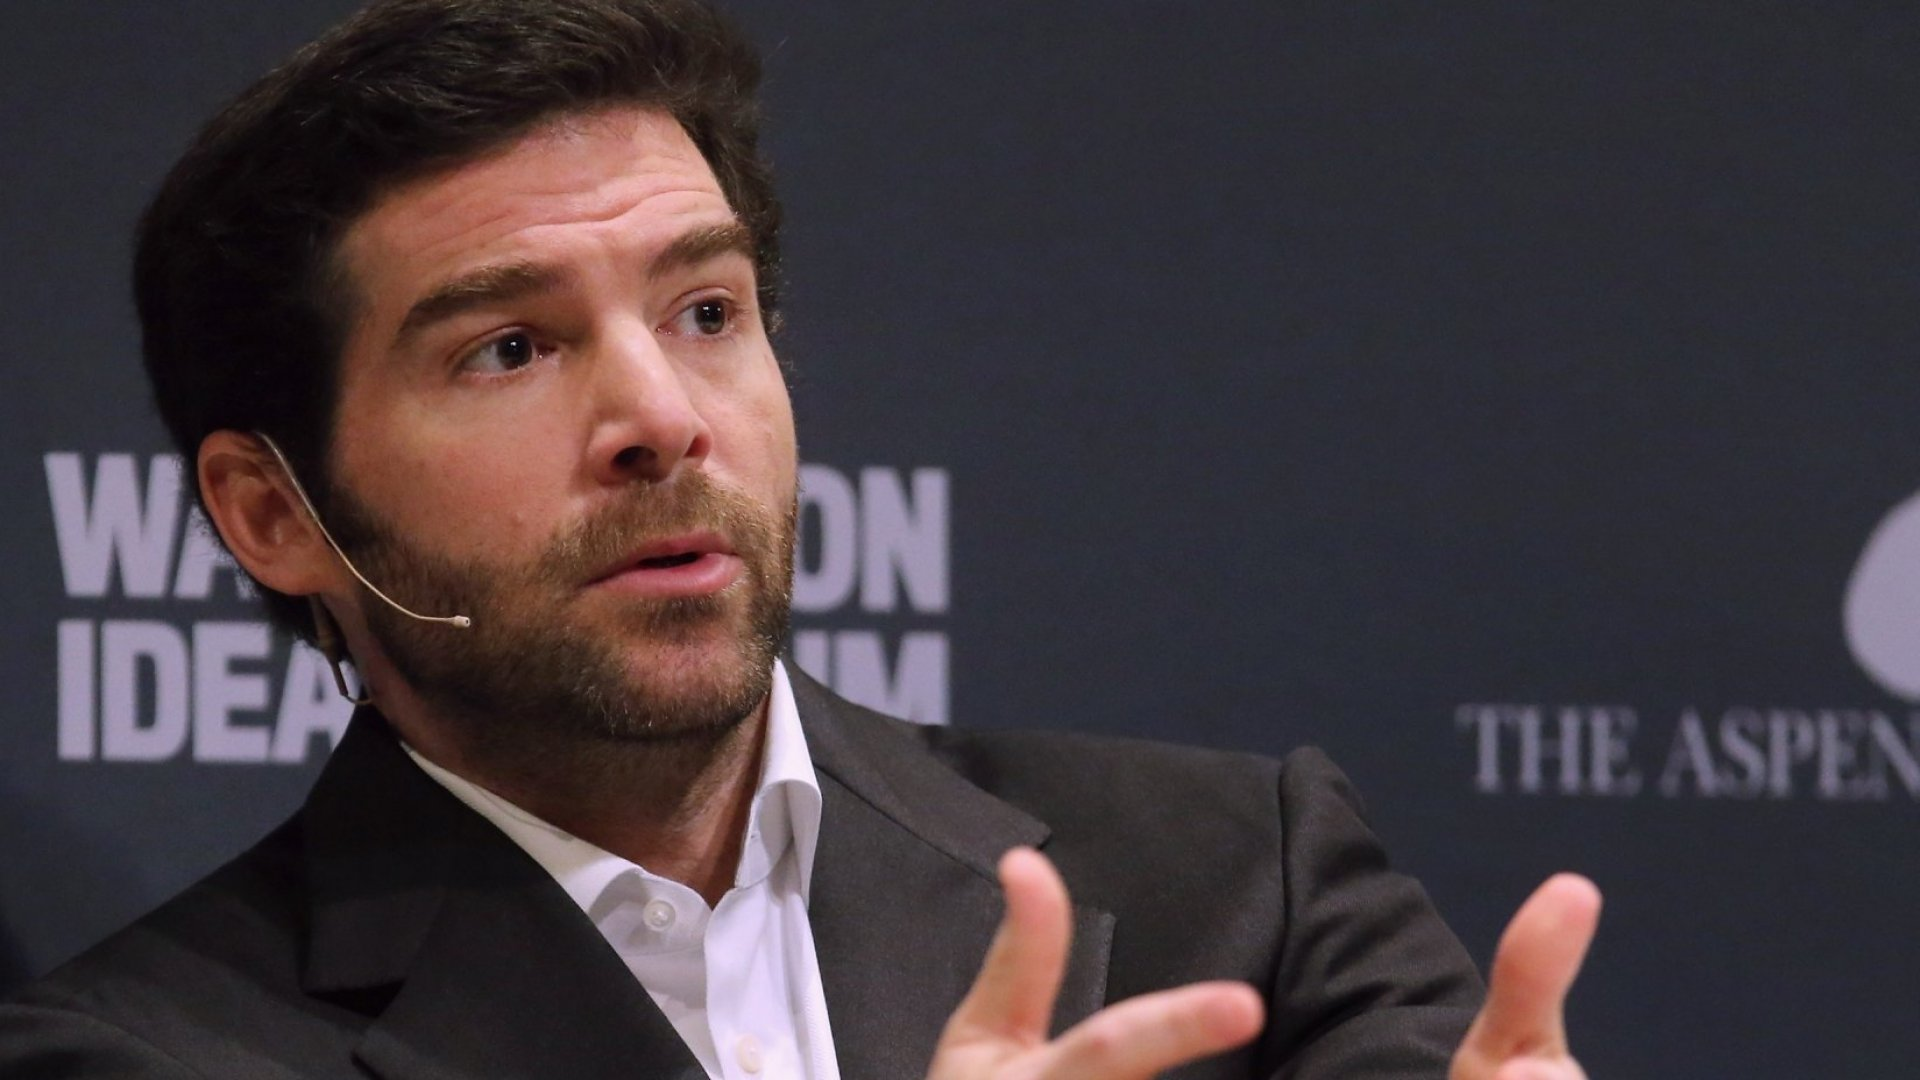 LinkedIn's CEO Just Identified the Single Biggest Email Mistake You Can Make (and We're All Guilty)